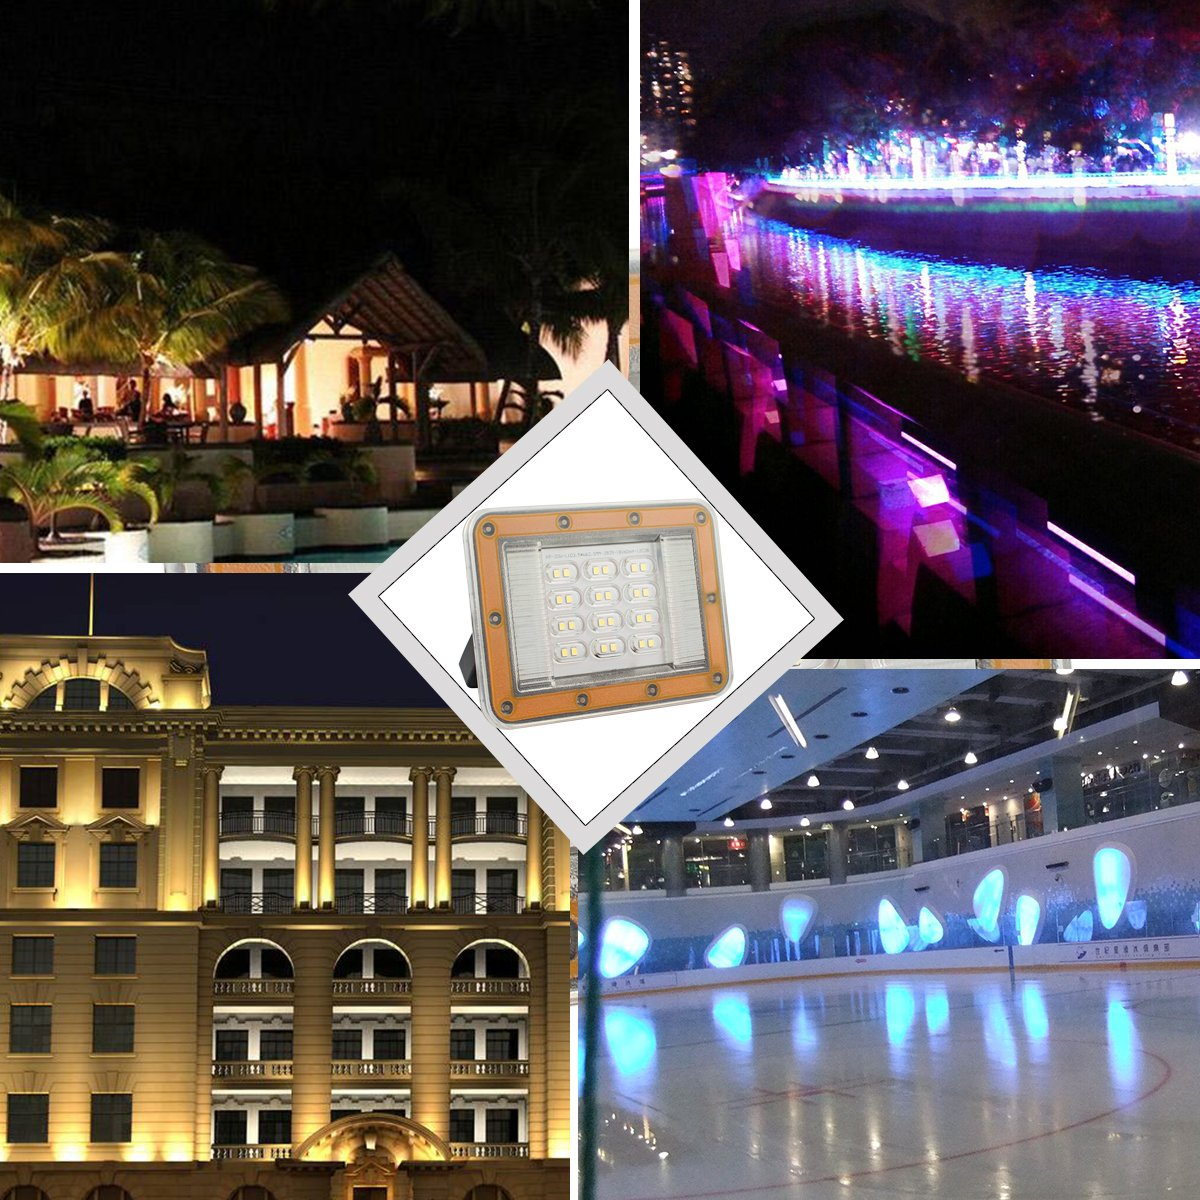 B2ocled 1x 20W Waterproof LED Floodlight Ultrathin Security Light Super Bright Outdoor Wall Light with Plug Daylight